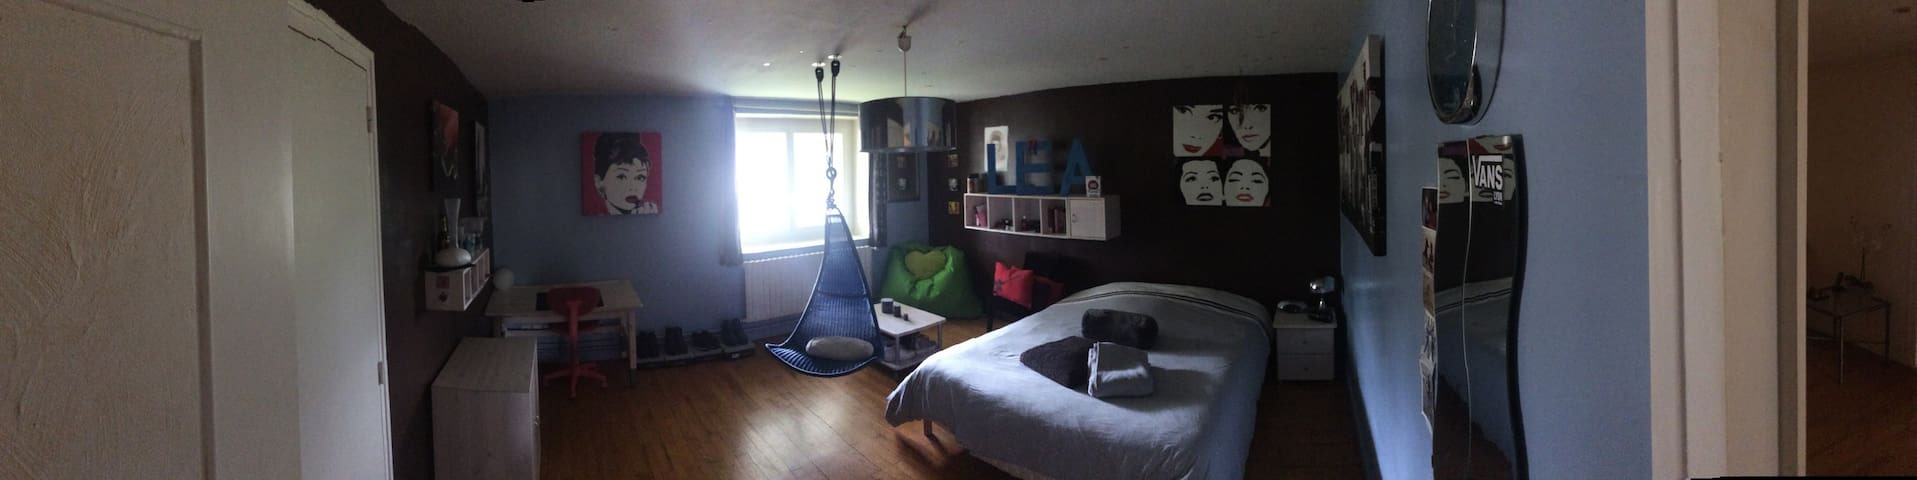 EURO 2016 Chambre pour 2 personnes - Saint-Pierre-de-Chandieu - Bed & Breakfast